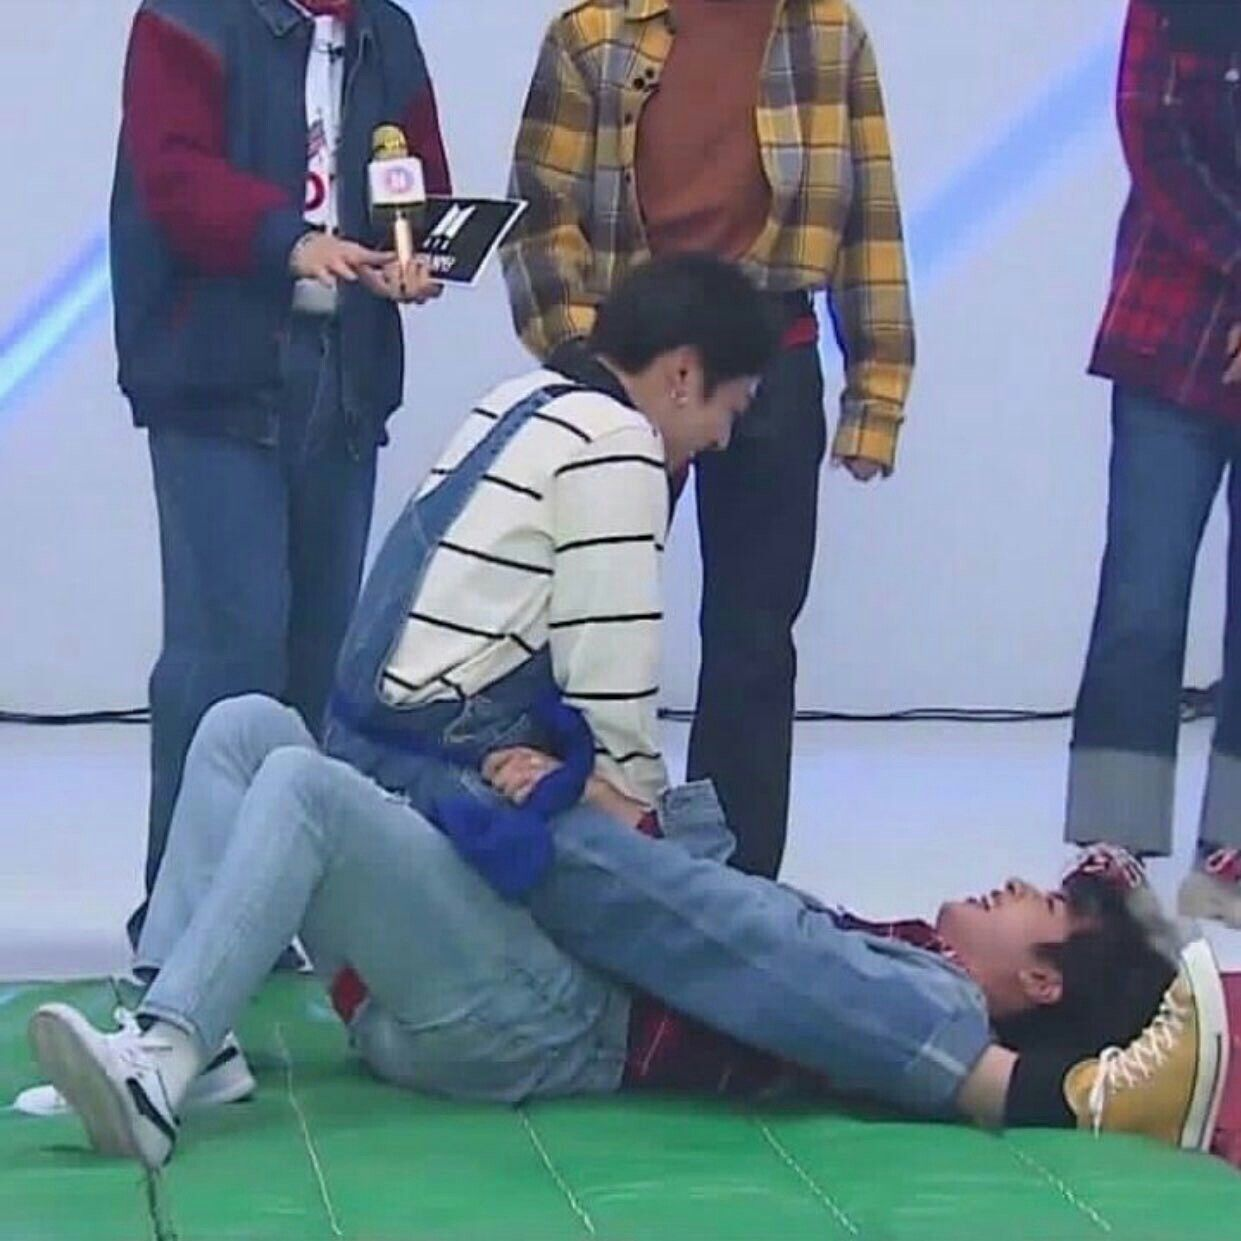 Dad And Son...I Mean The Oldest And The Maknae Playing